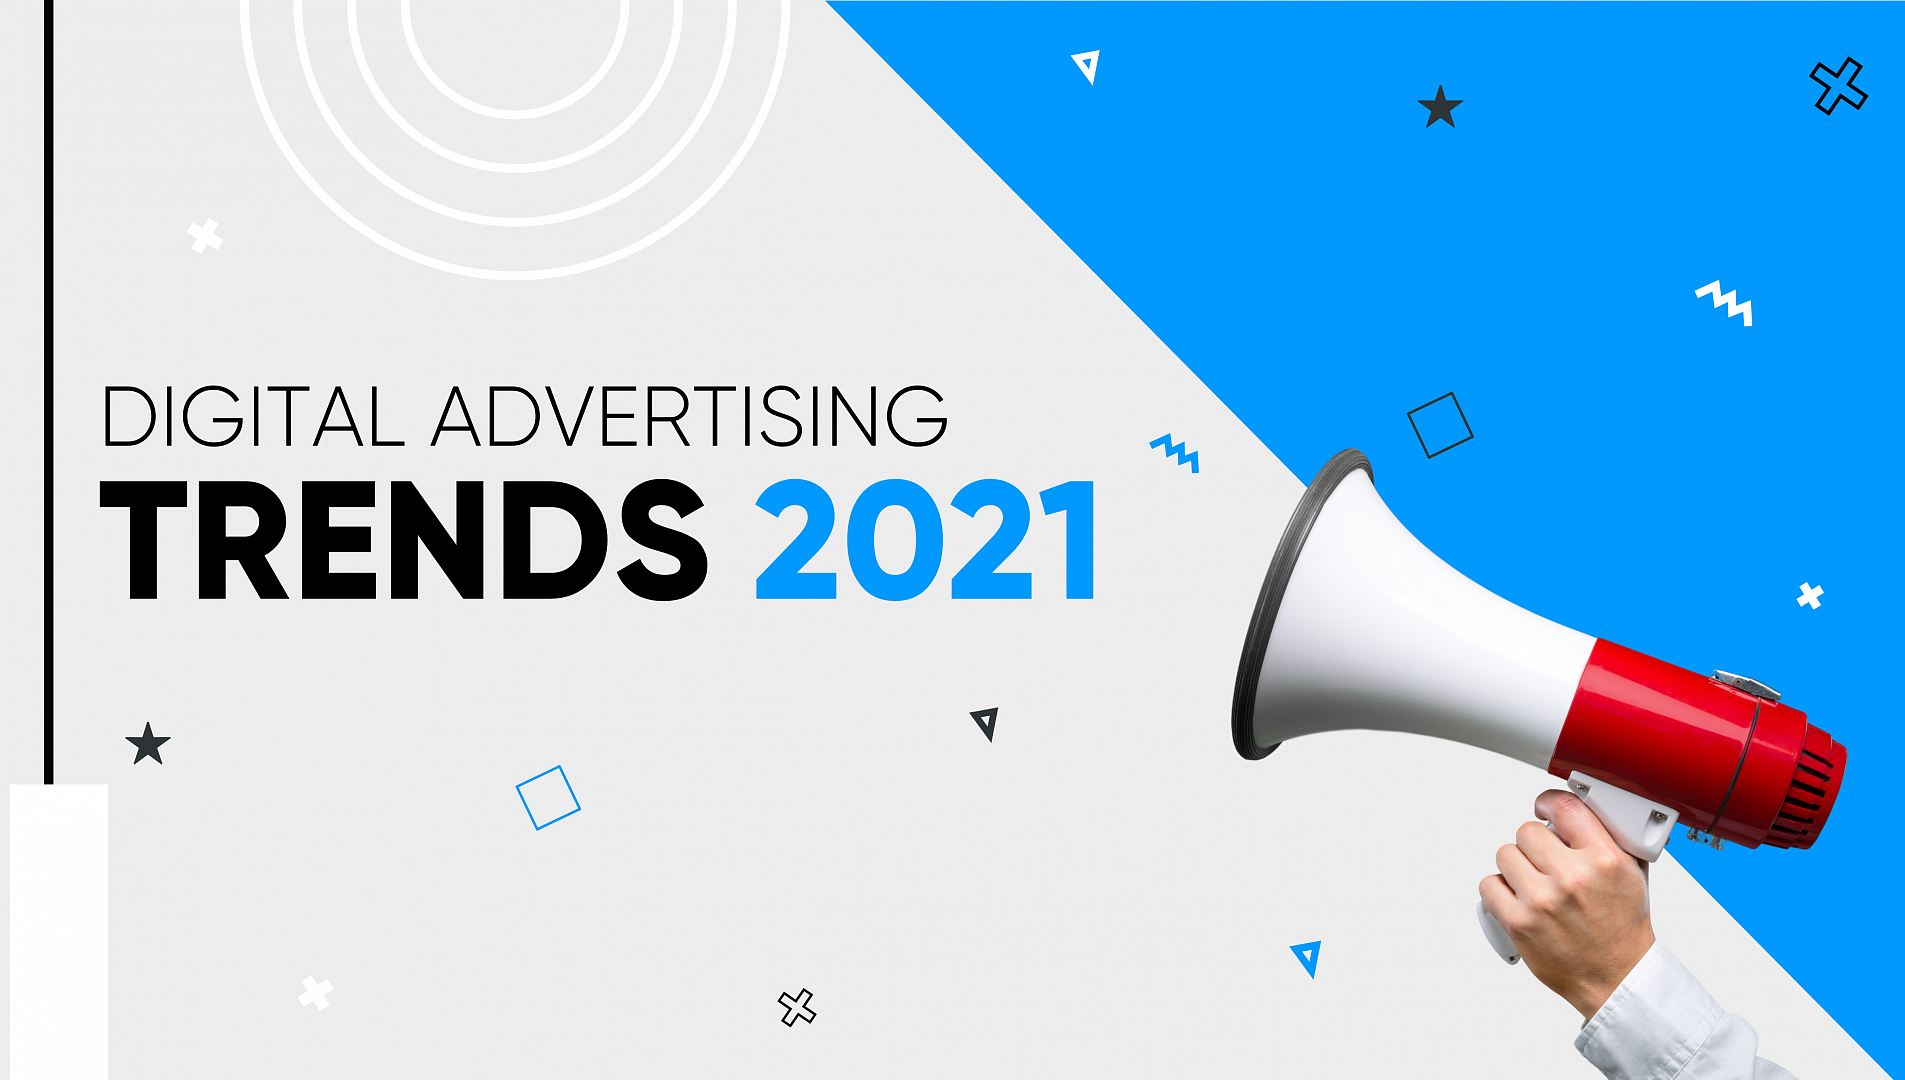 Digital Advertising Trends for 2021